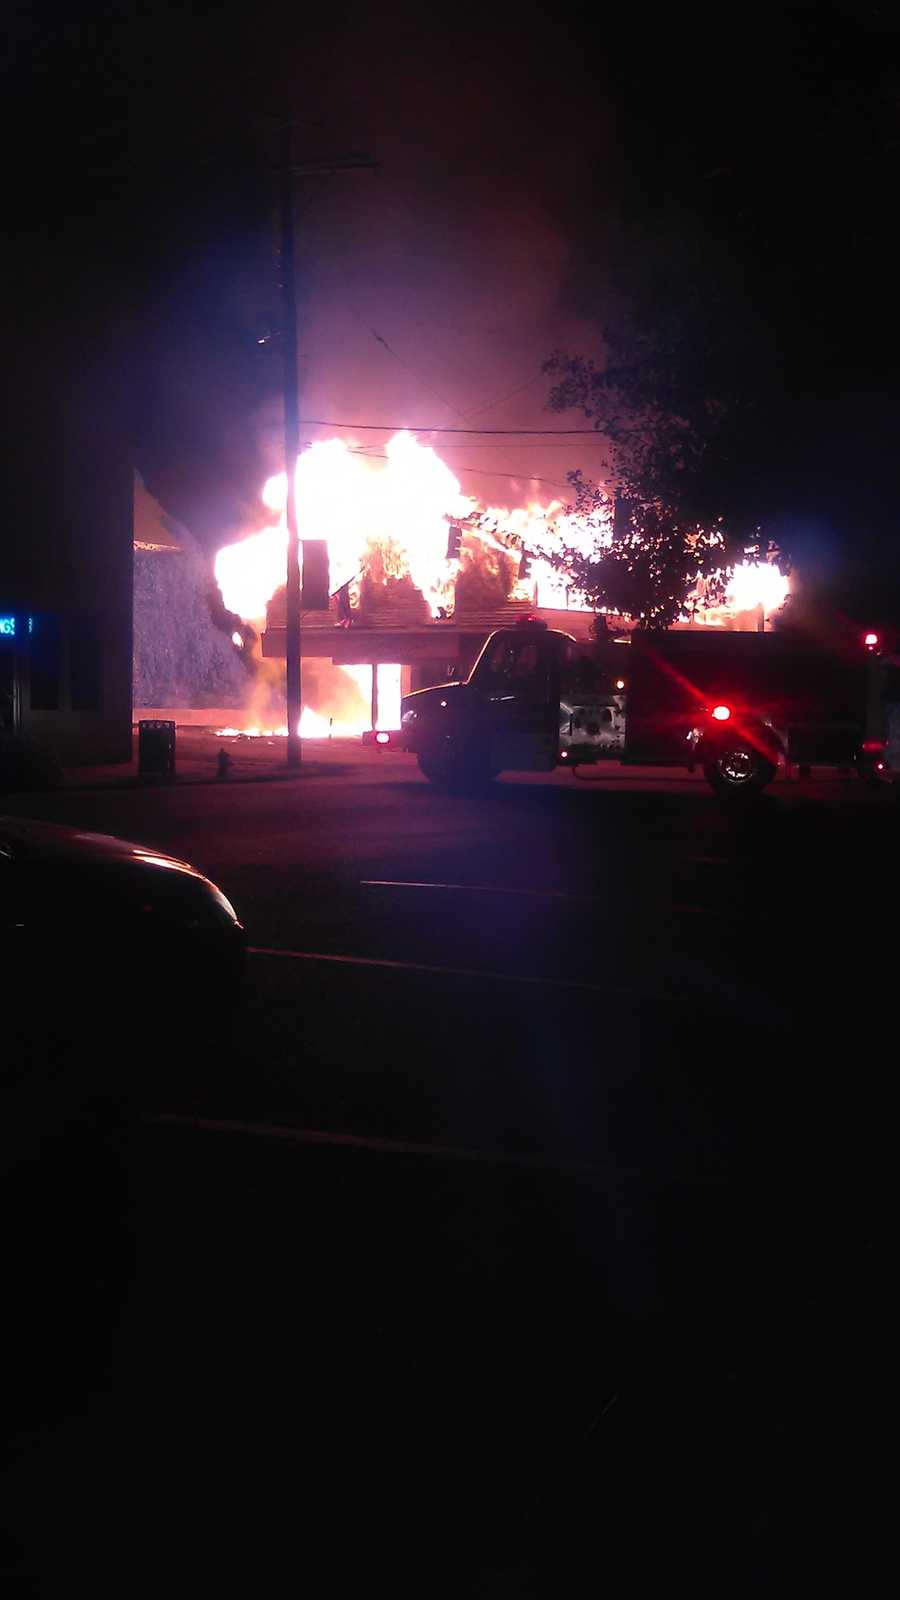 A Port Gibson Police dispatcher says the fire was reported about 8:20 p.m. Monday and was out within two hours.